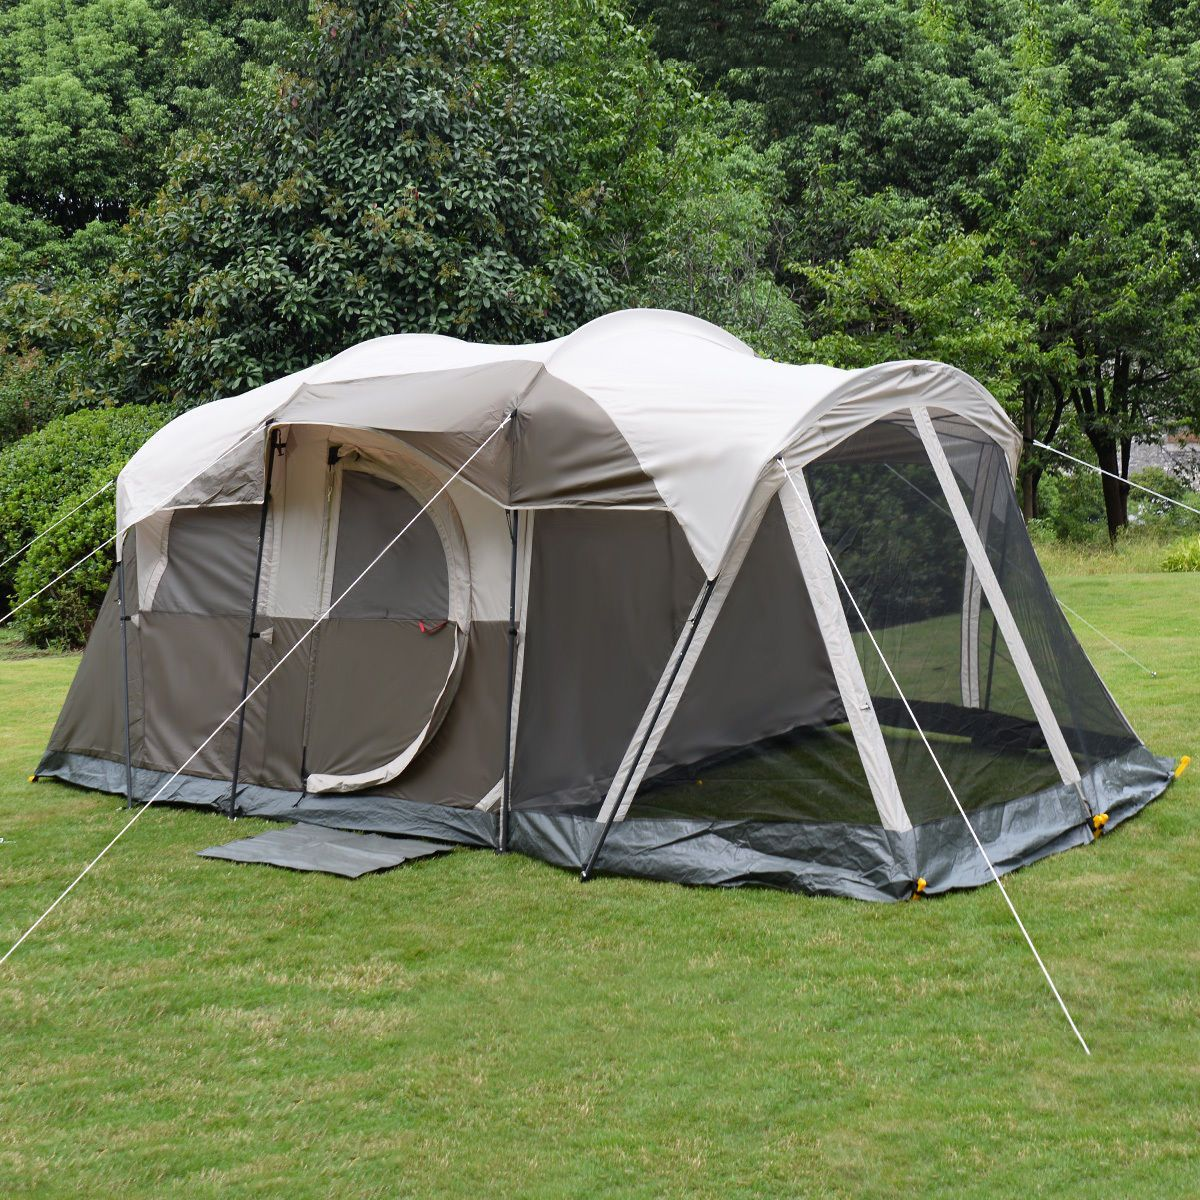 6 Person 3 Room Waterproof C&ing Tent Double Layer Family Outdoor Hiking W/Bag : 6 room tent - memphite.com